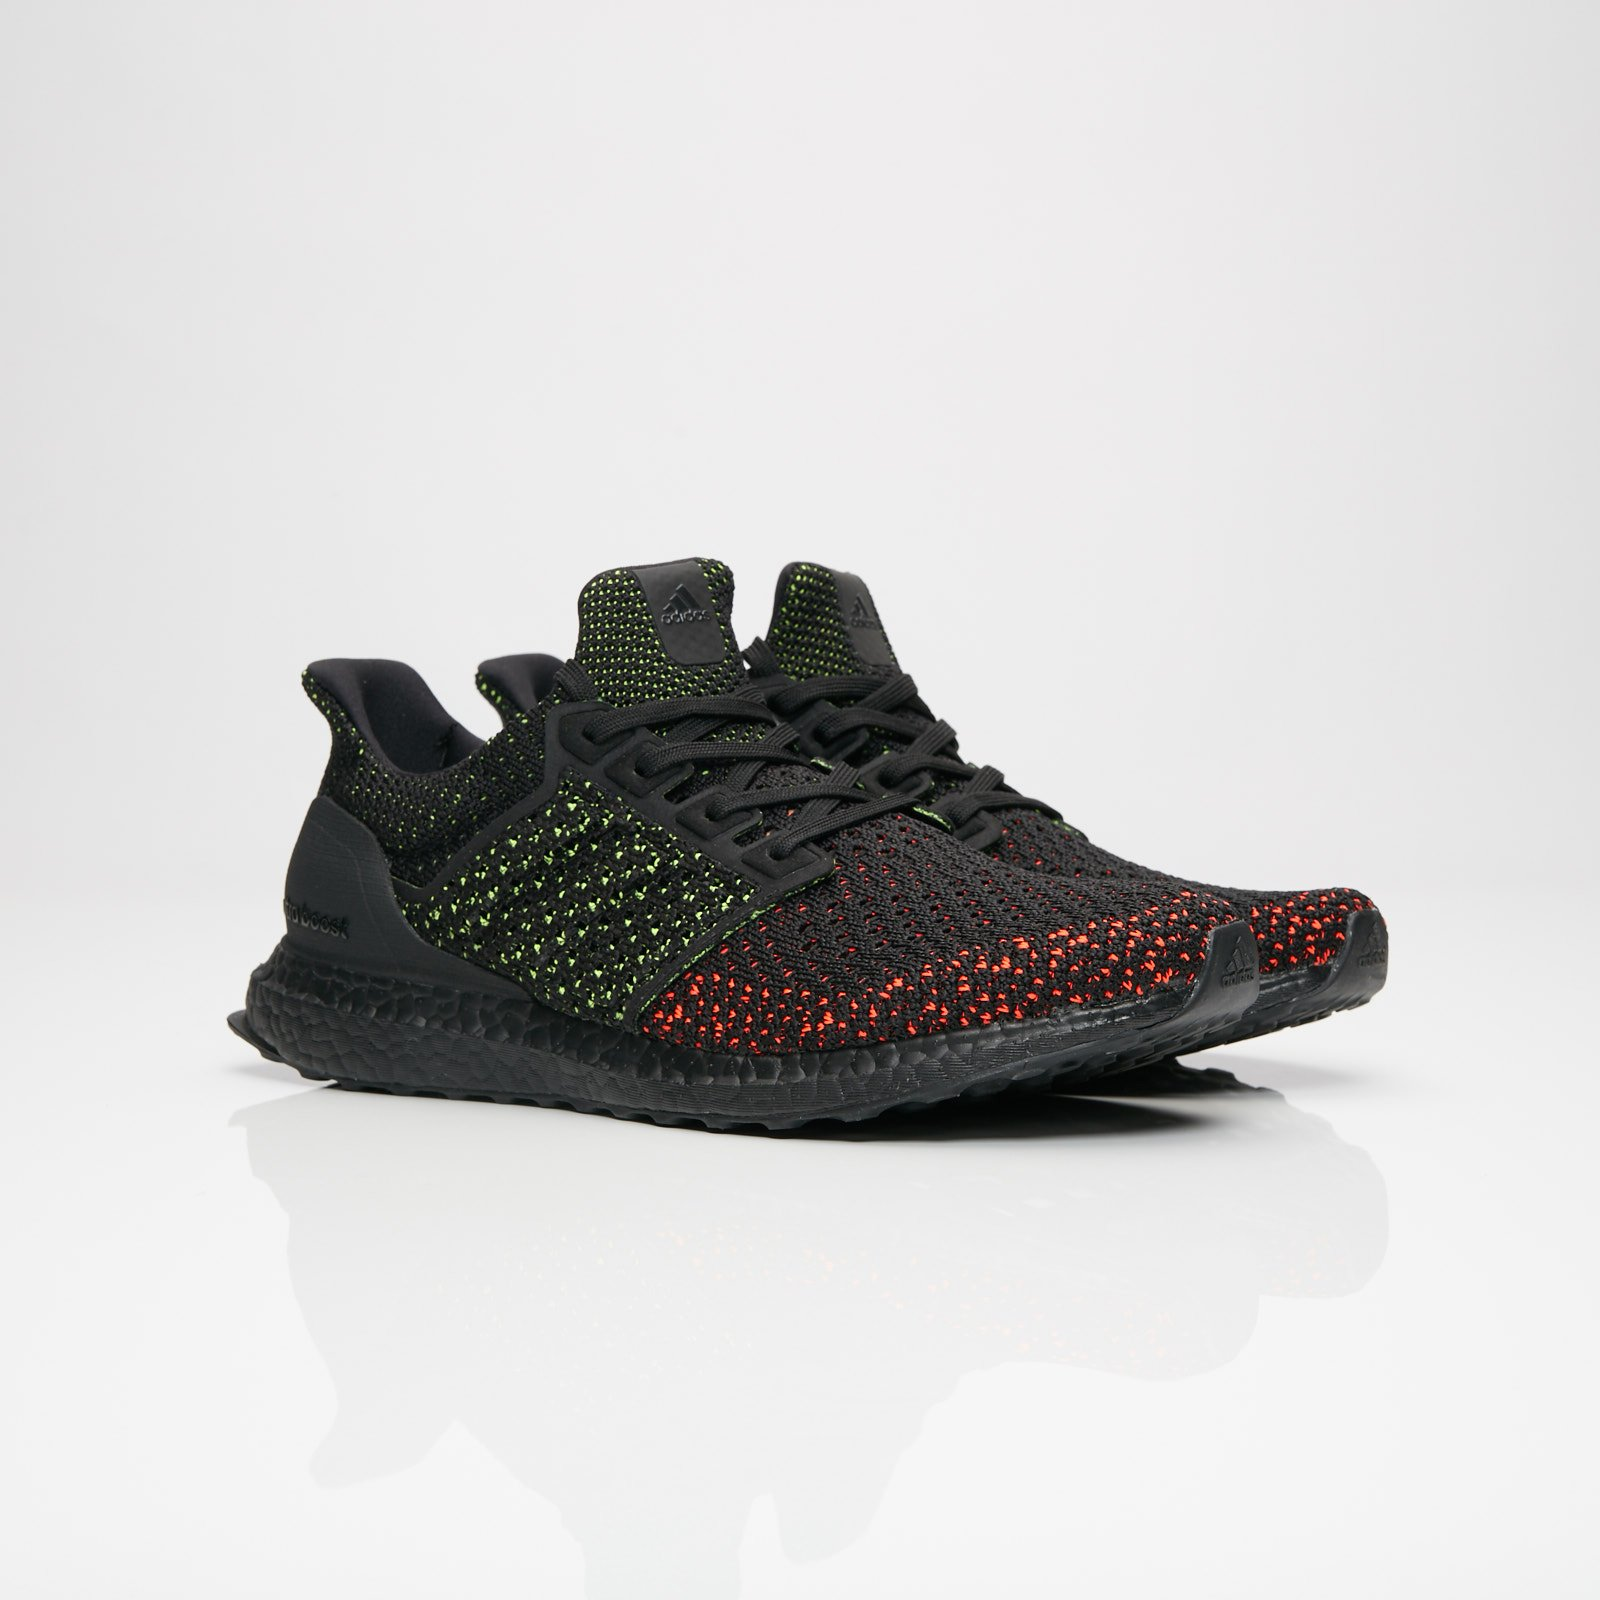 low priced 959d2 716ee adidas Ultraboost Clima - Aq0482 - Sneakersnstuff | sneakers ...